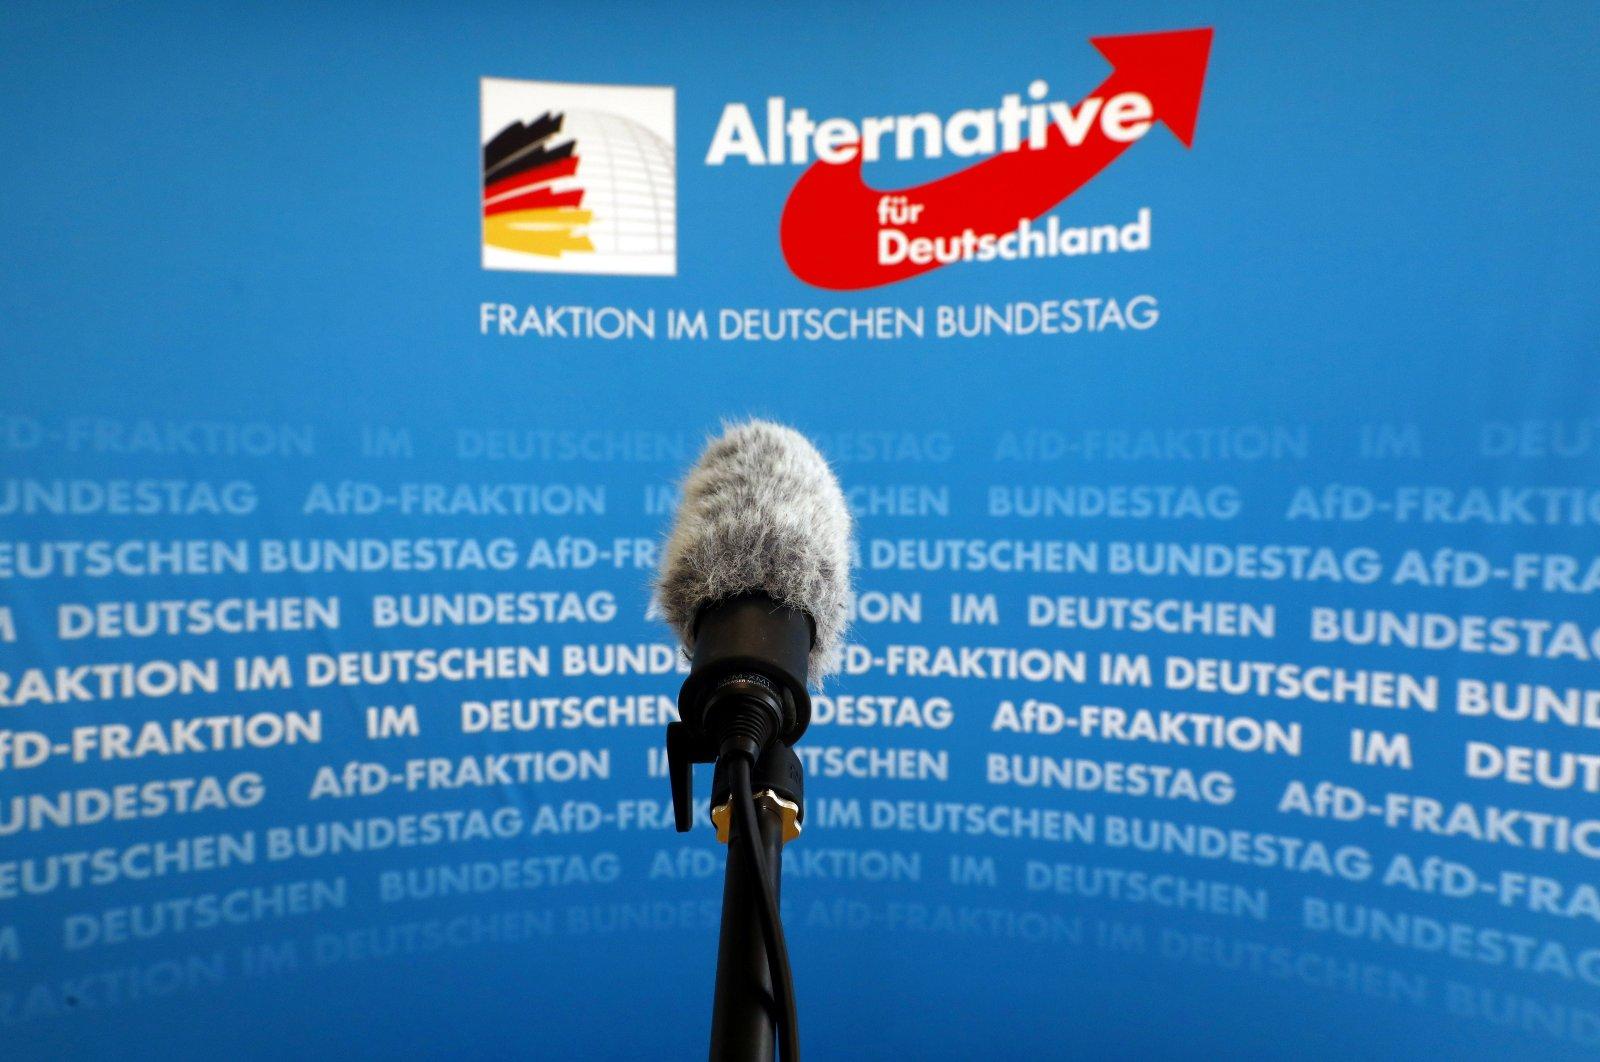 A microphone stands in front of an AfD (Alternative fuer Deutschland) logo on the press wall of the German Bundestag in Berlin, Germany, March 12, 2020. (Reuters Photo)